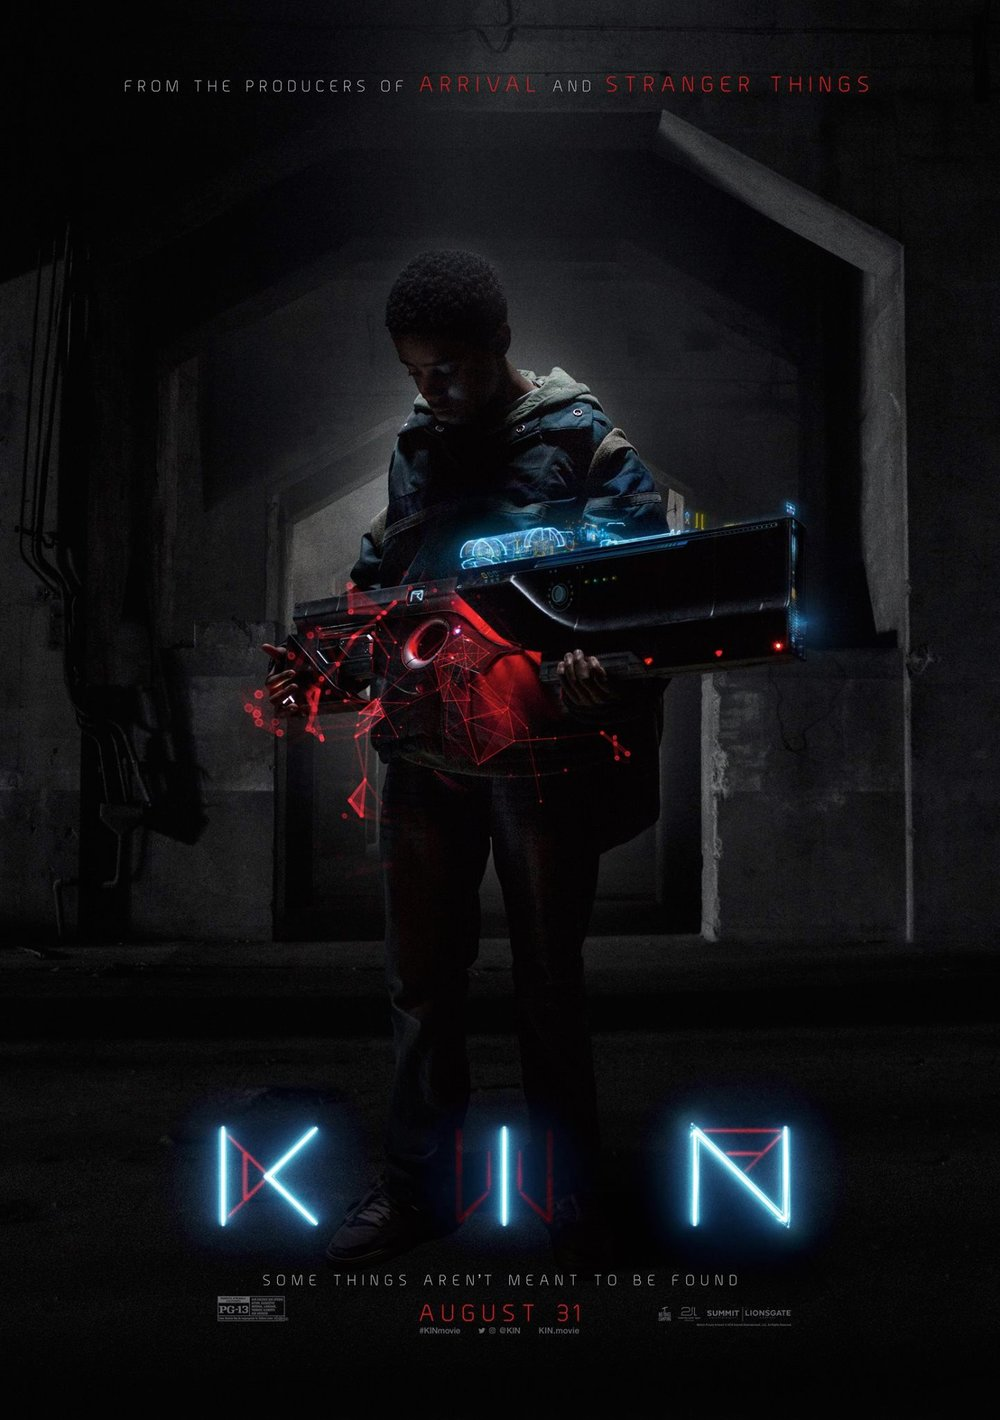 4new-clip-and-poster-for-the-sci-fi-thriller-kin-shows-some-alien-weapon-tech-in-action4